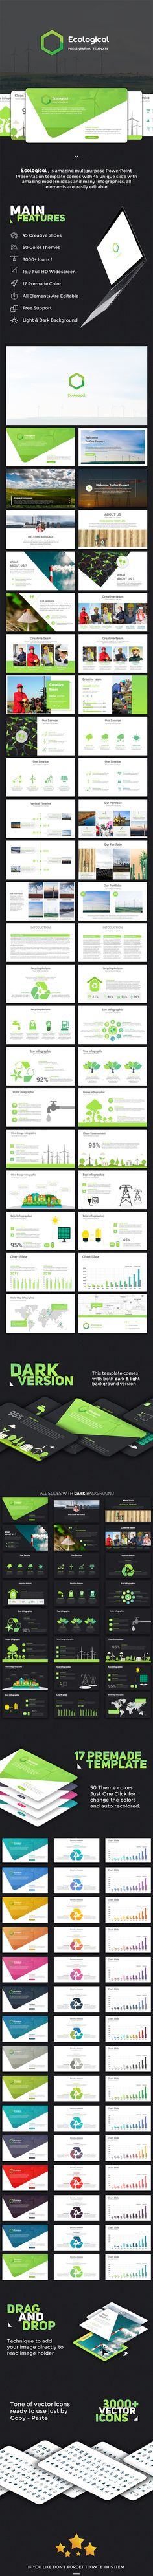 Ecological PowerPoint Template - PowerPoint Templates Presentation Templates